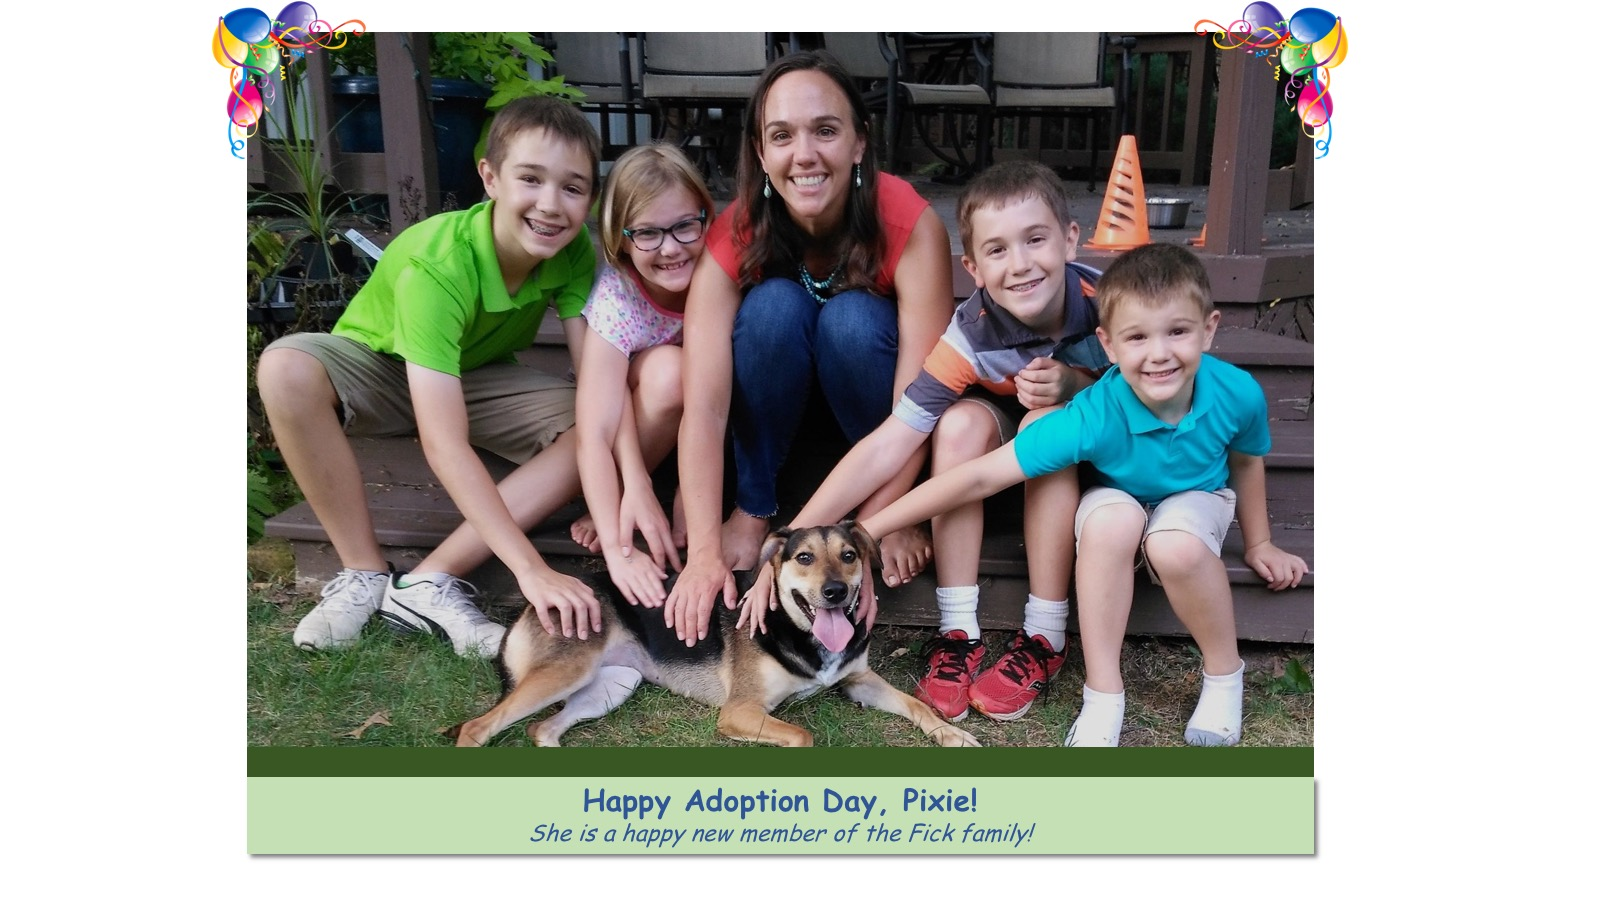 Pixie_Adoption_Photo_2018.jpg